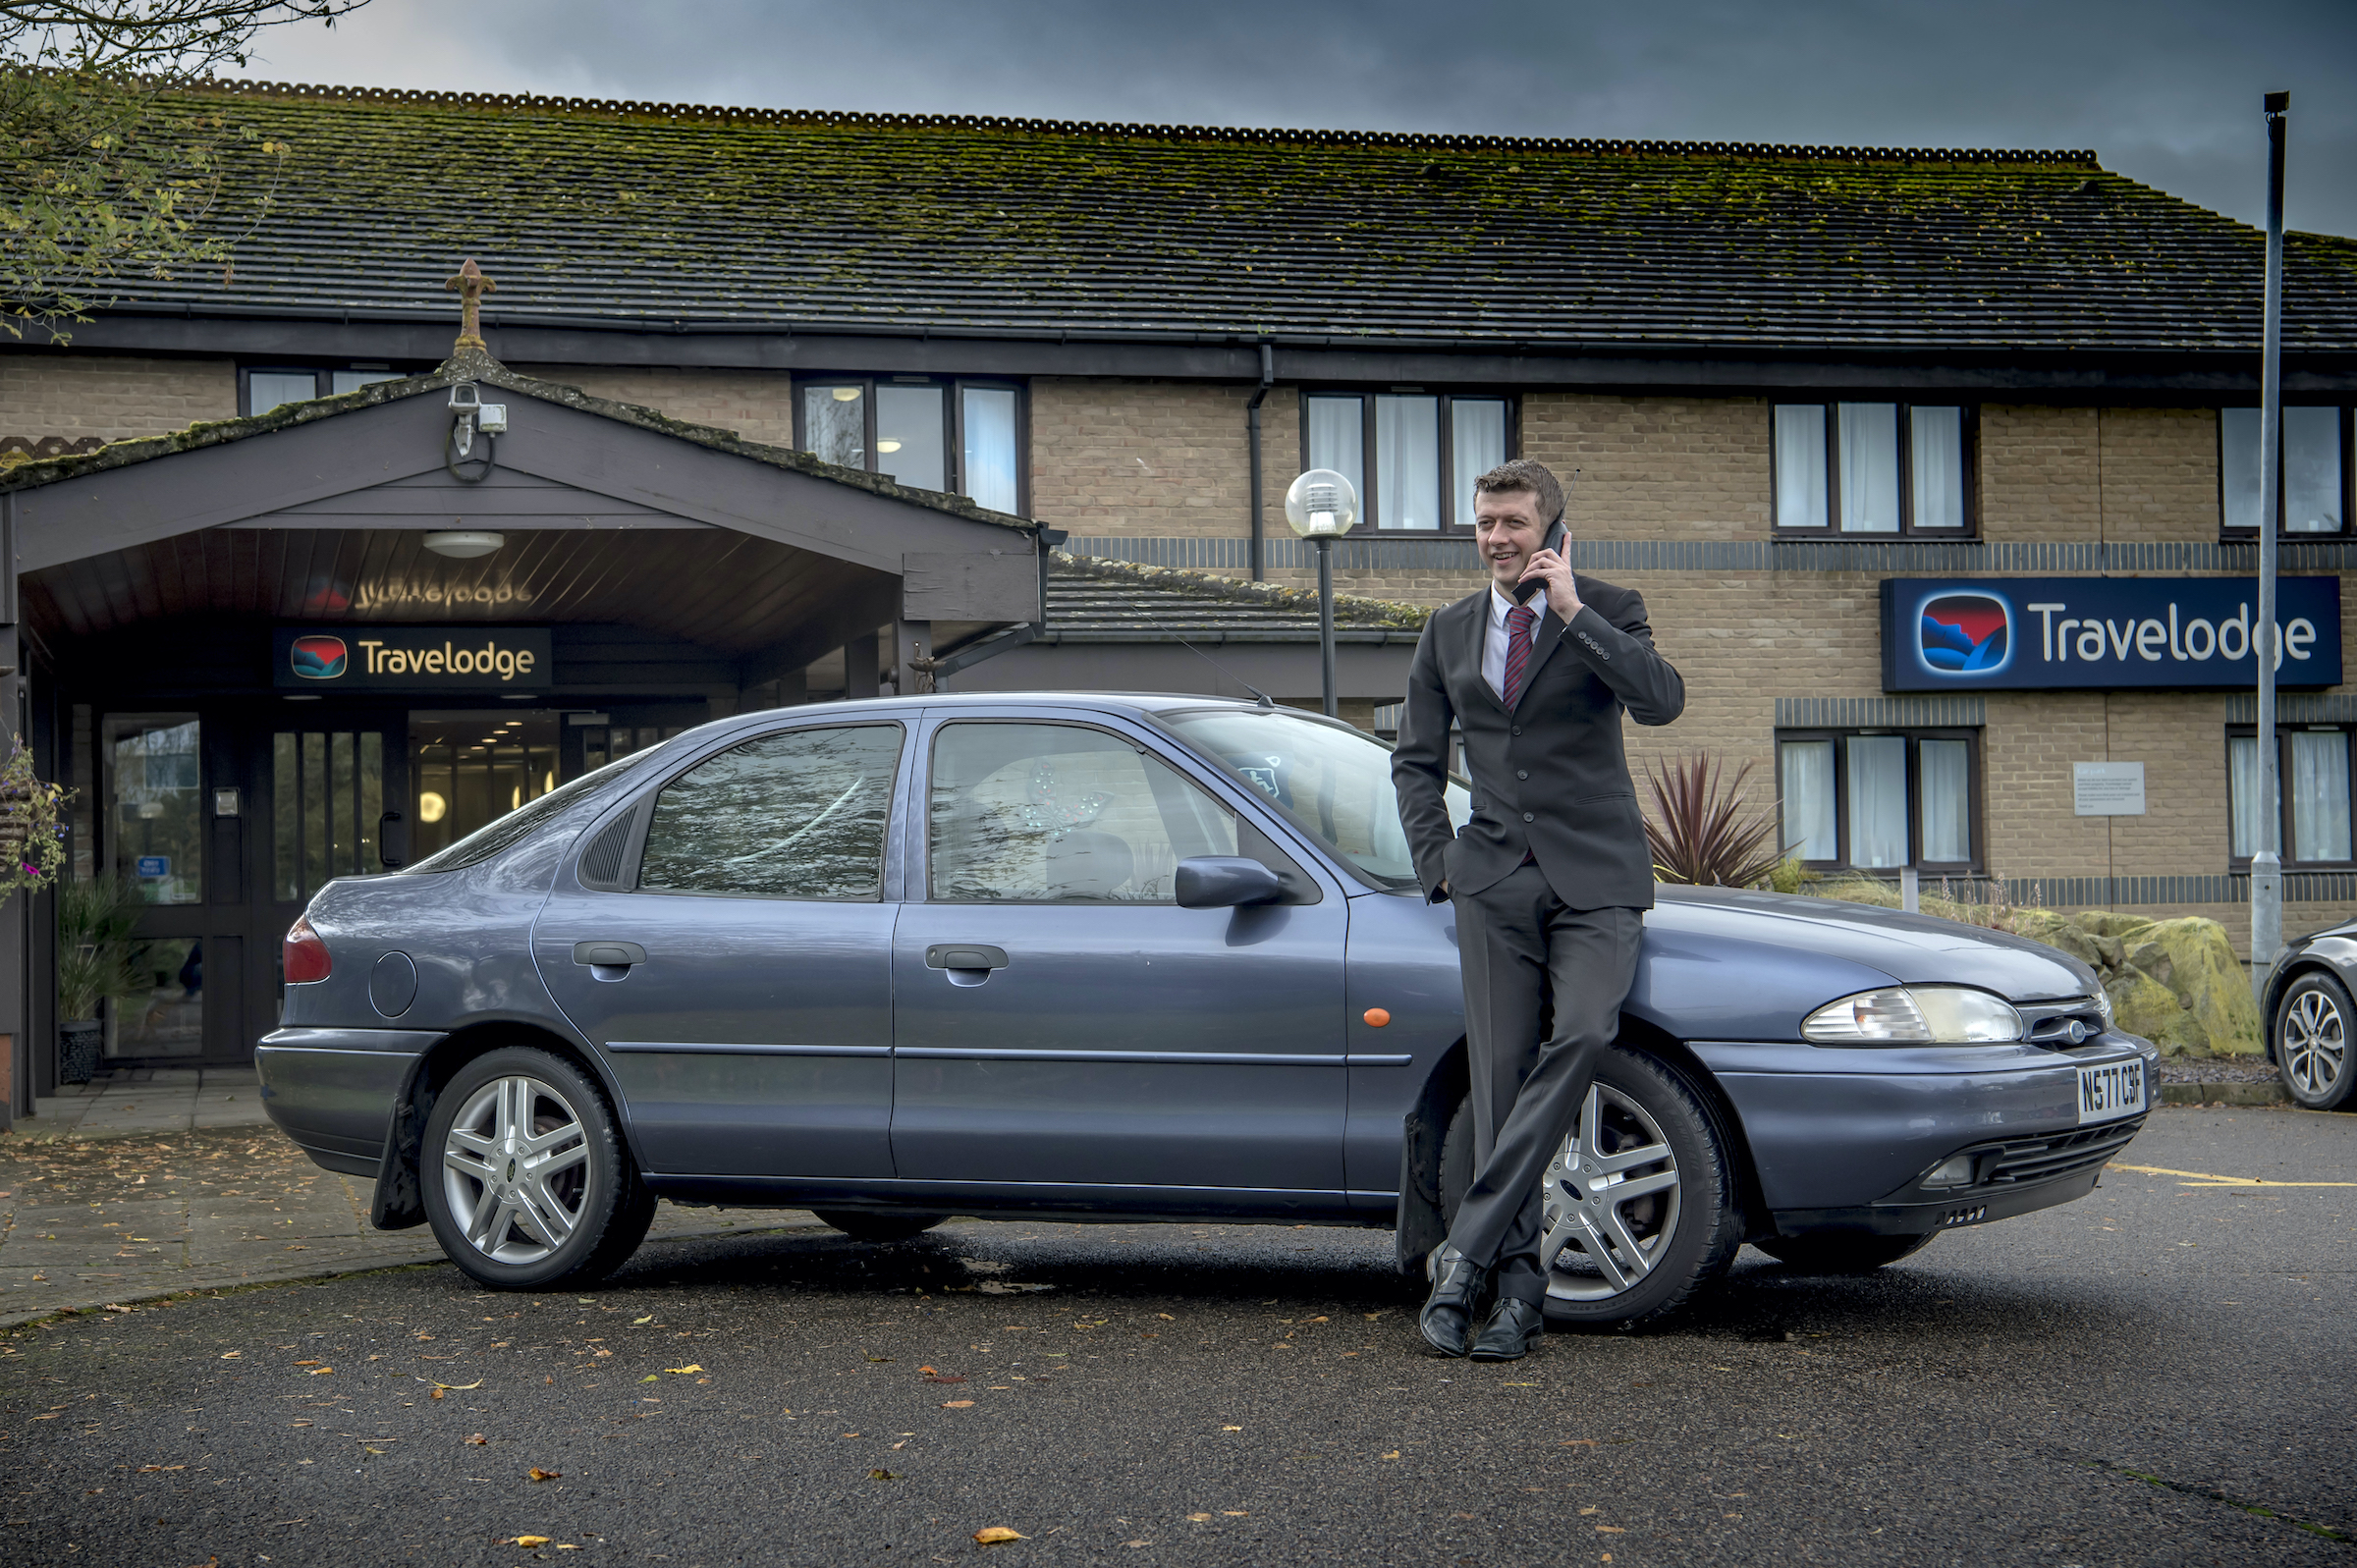 9 key moments in the history of the Ford Mondeo